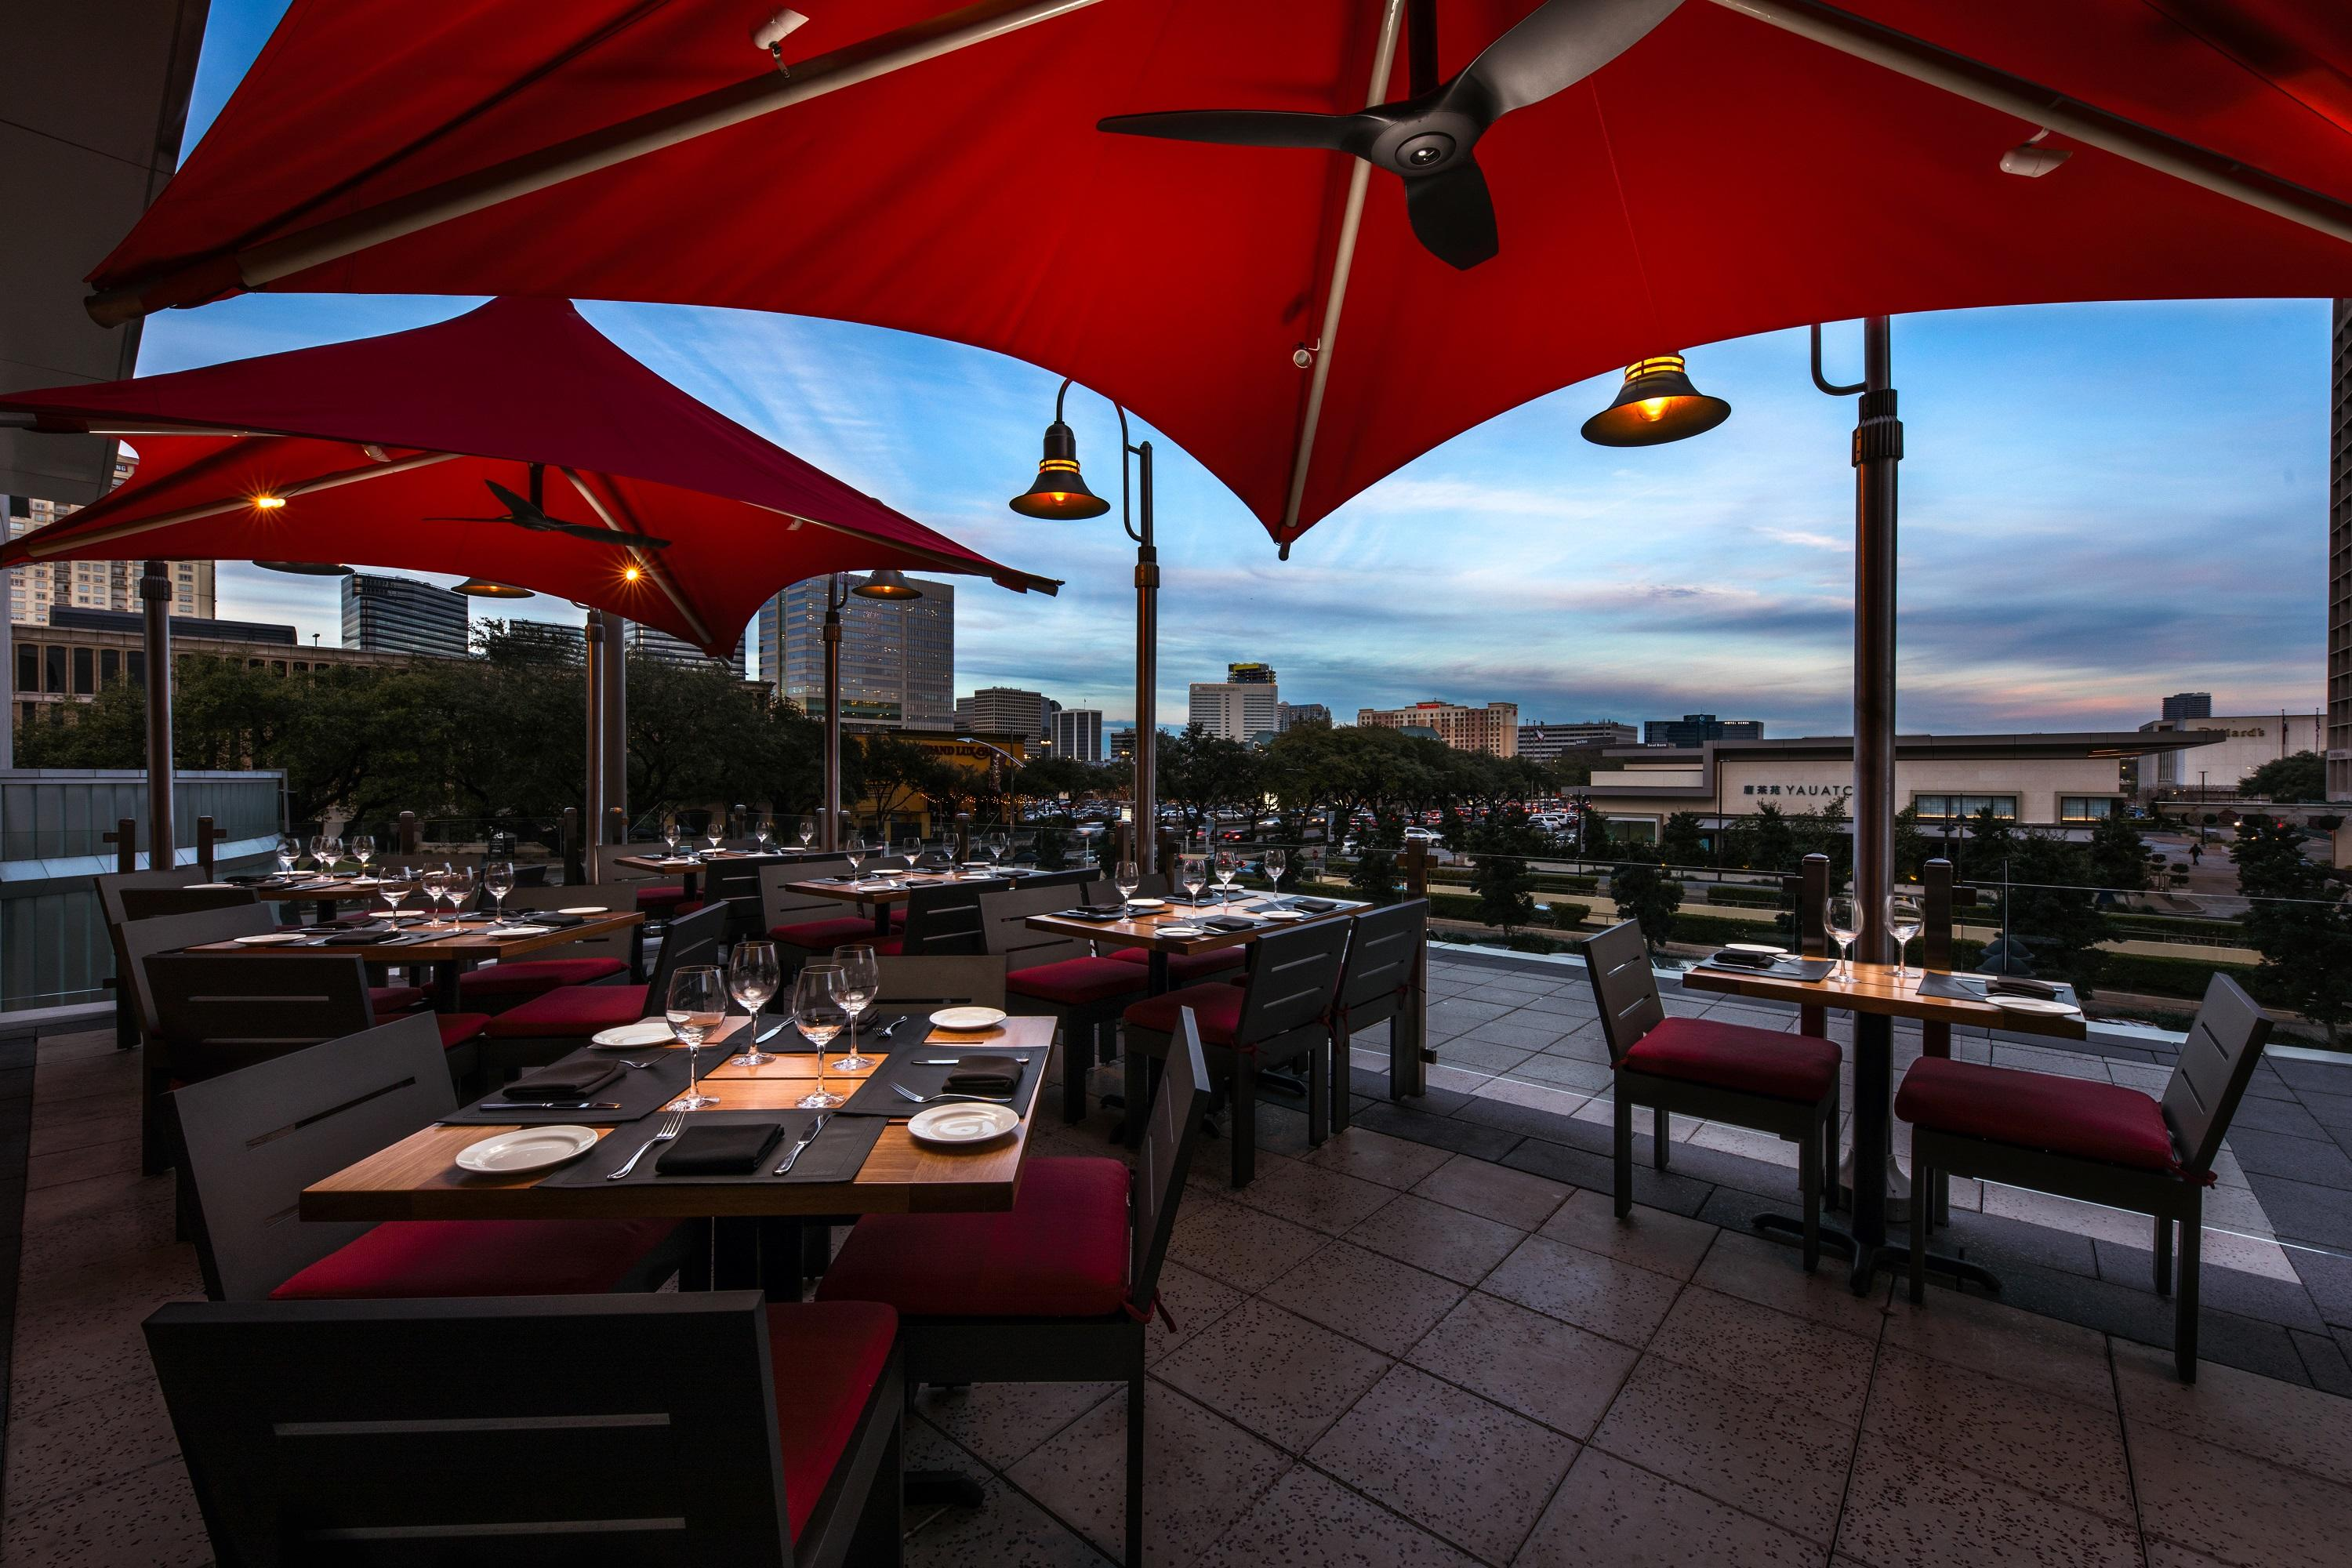 Del Frisco's Double Eagle Steakhouse Houston Outdoor Balcony private dining room